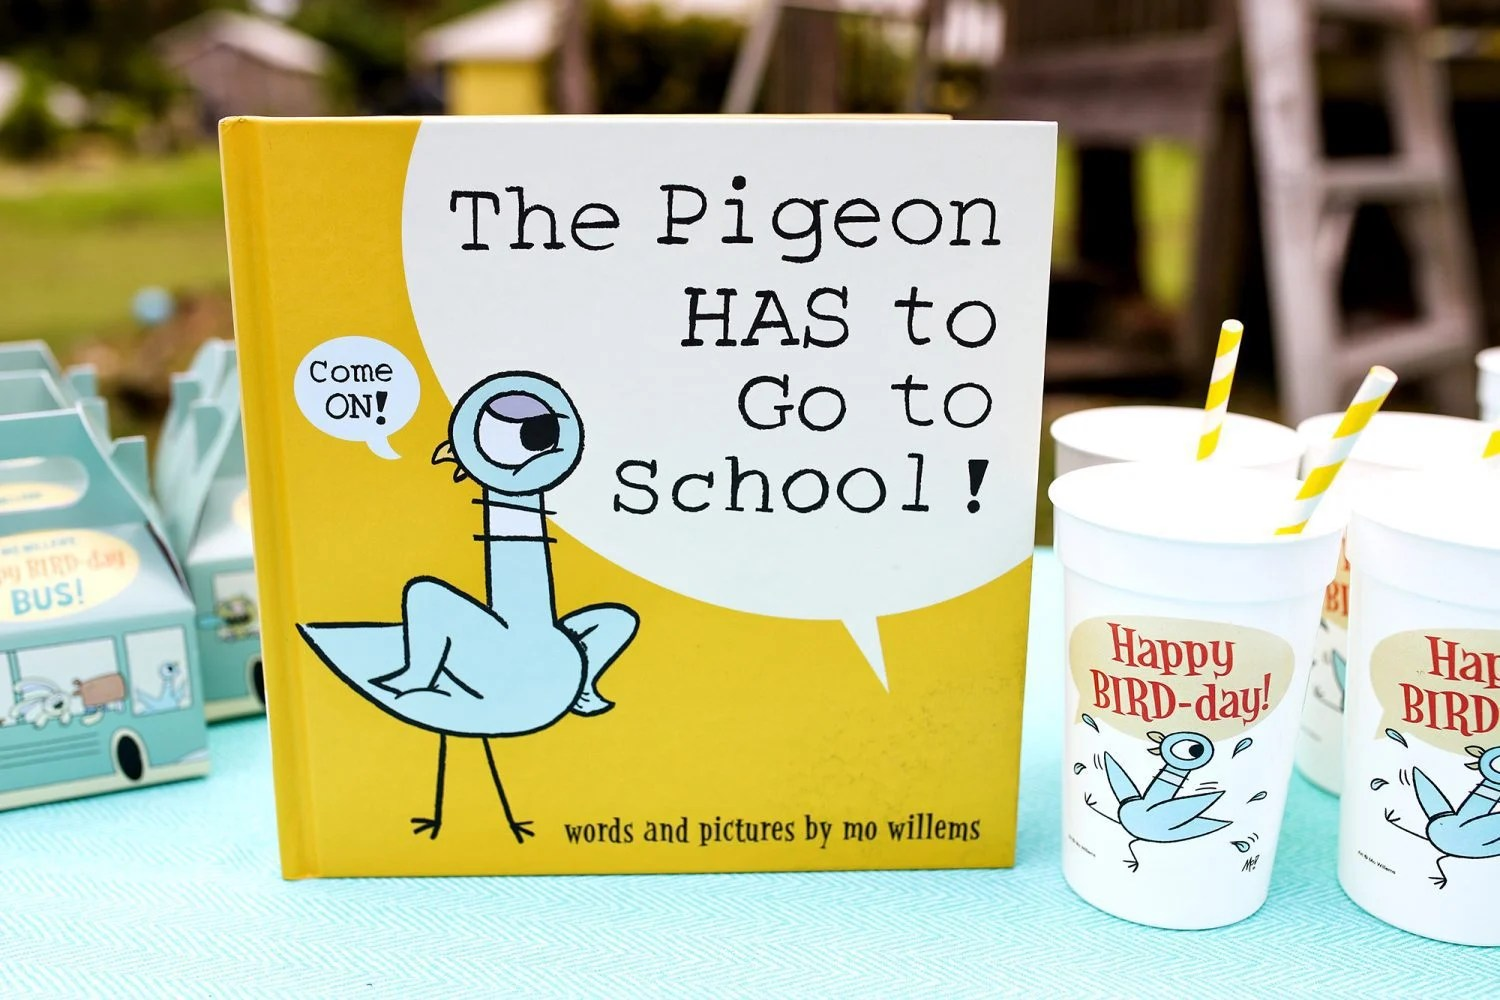 the pigeon has to go to school by mo willems and happy bird-day cups